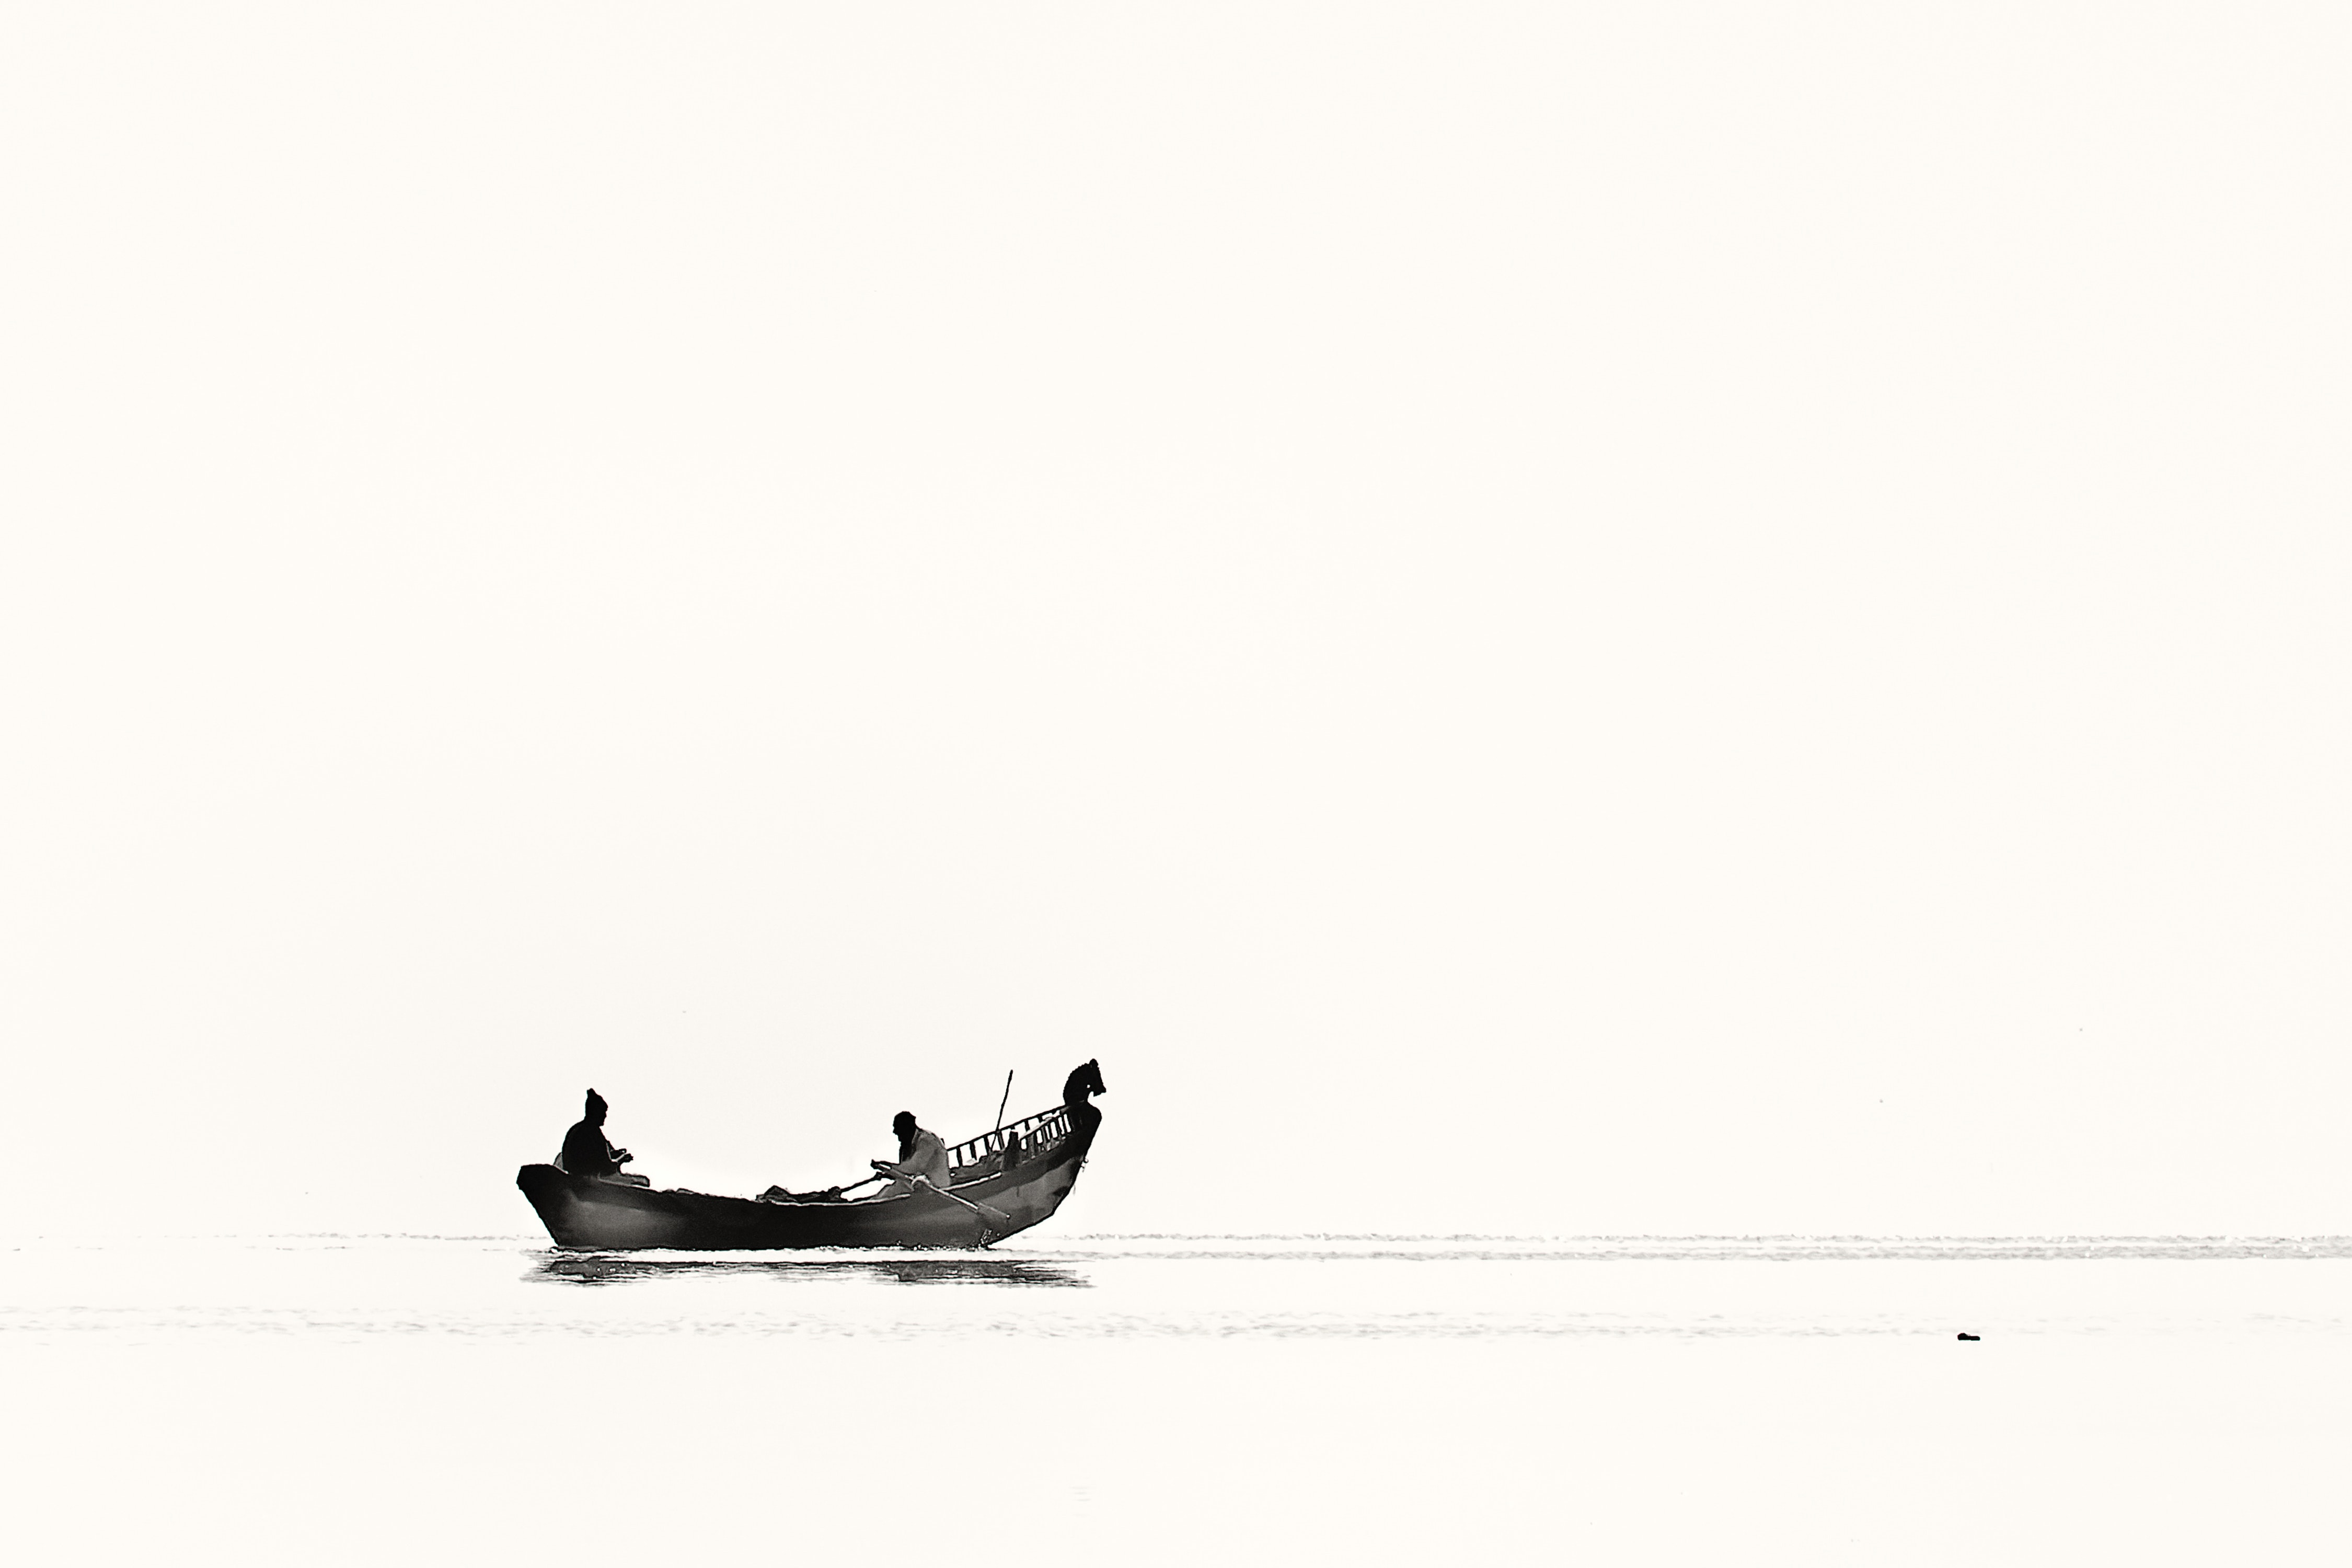 Two person riding boat on body of water photo